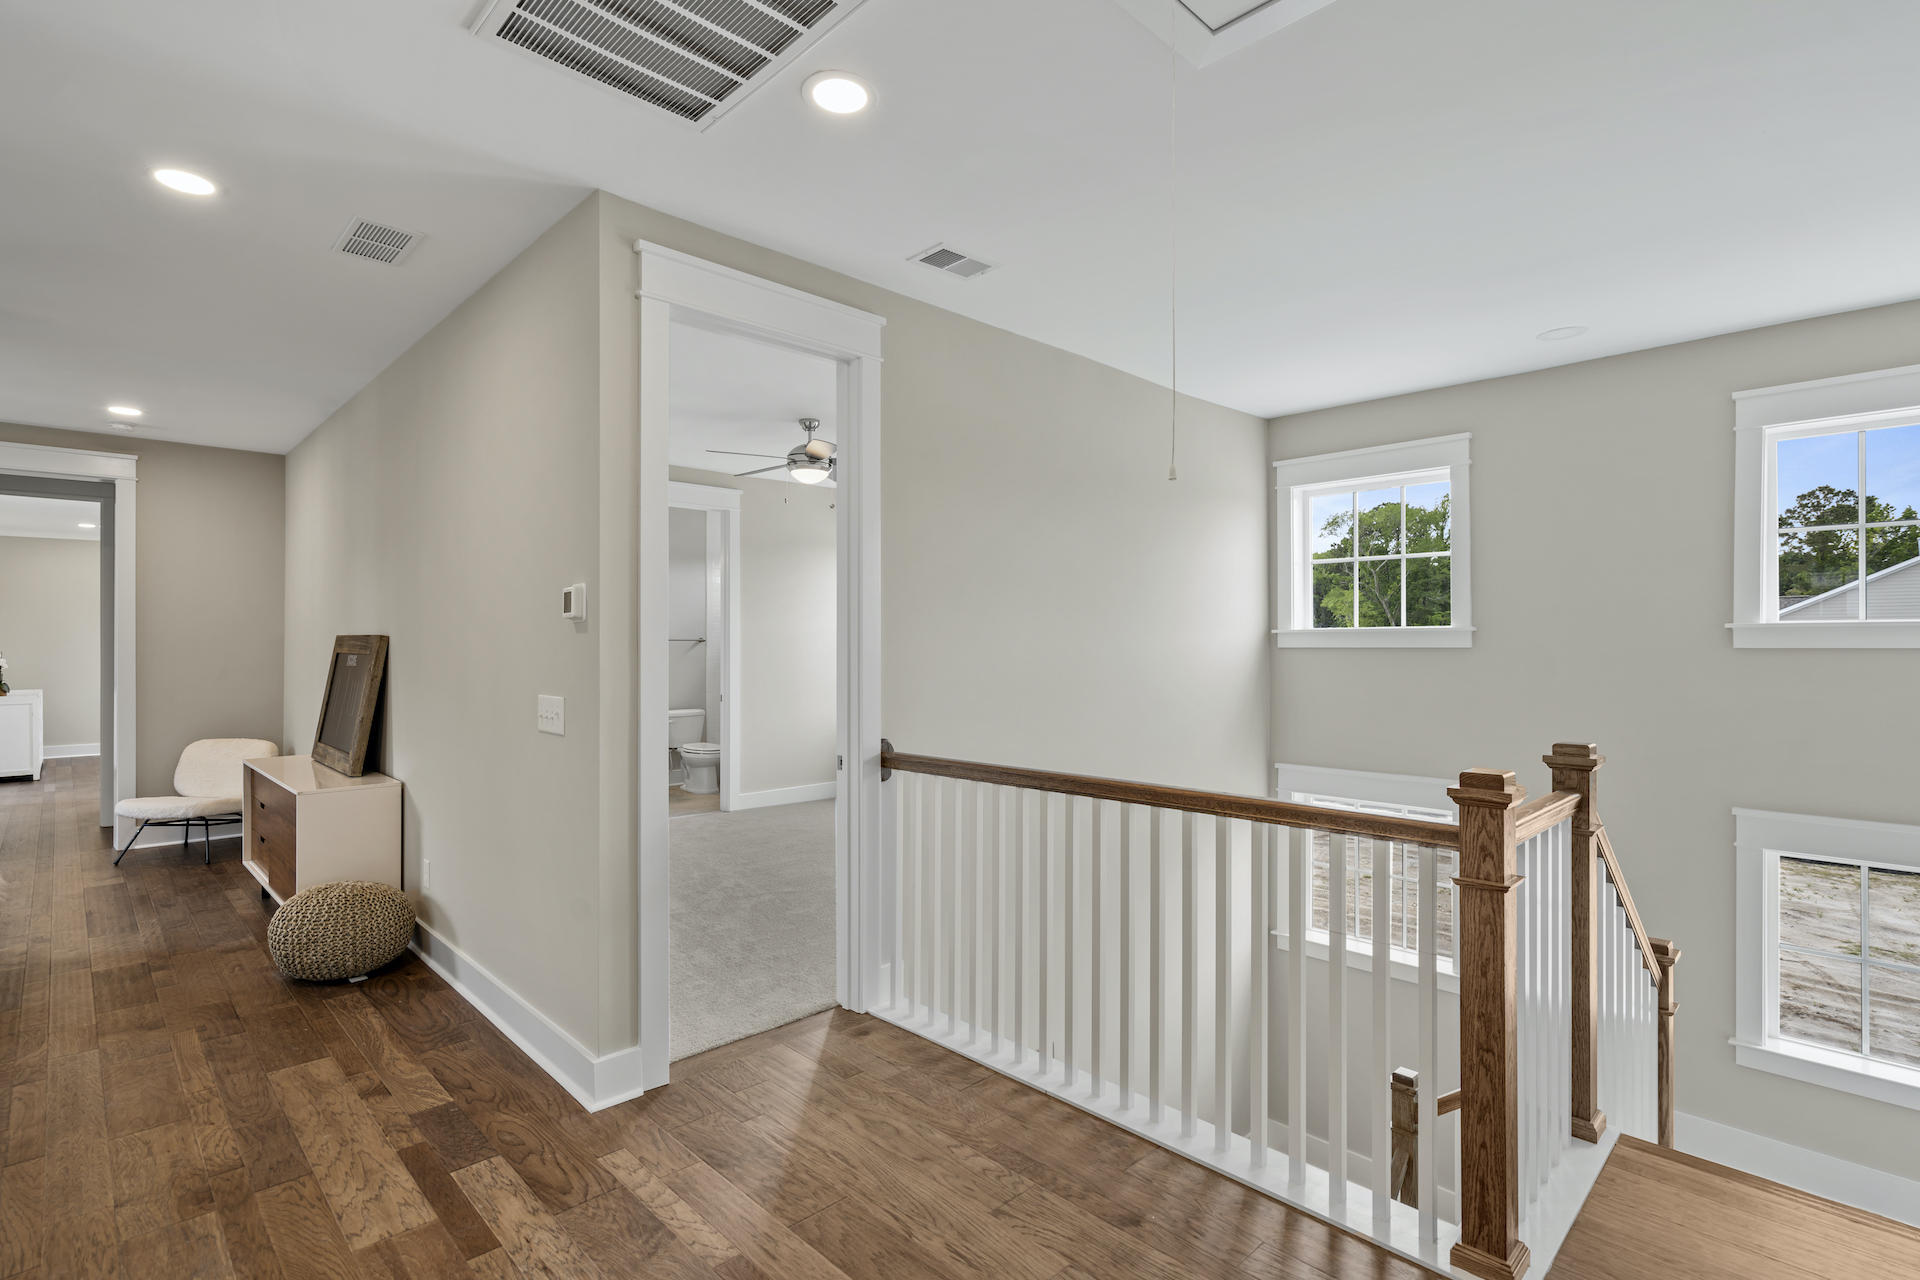 Midtown Homes For Sale - 13 Founders, Mount Pleasant, SC - 0